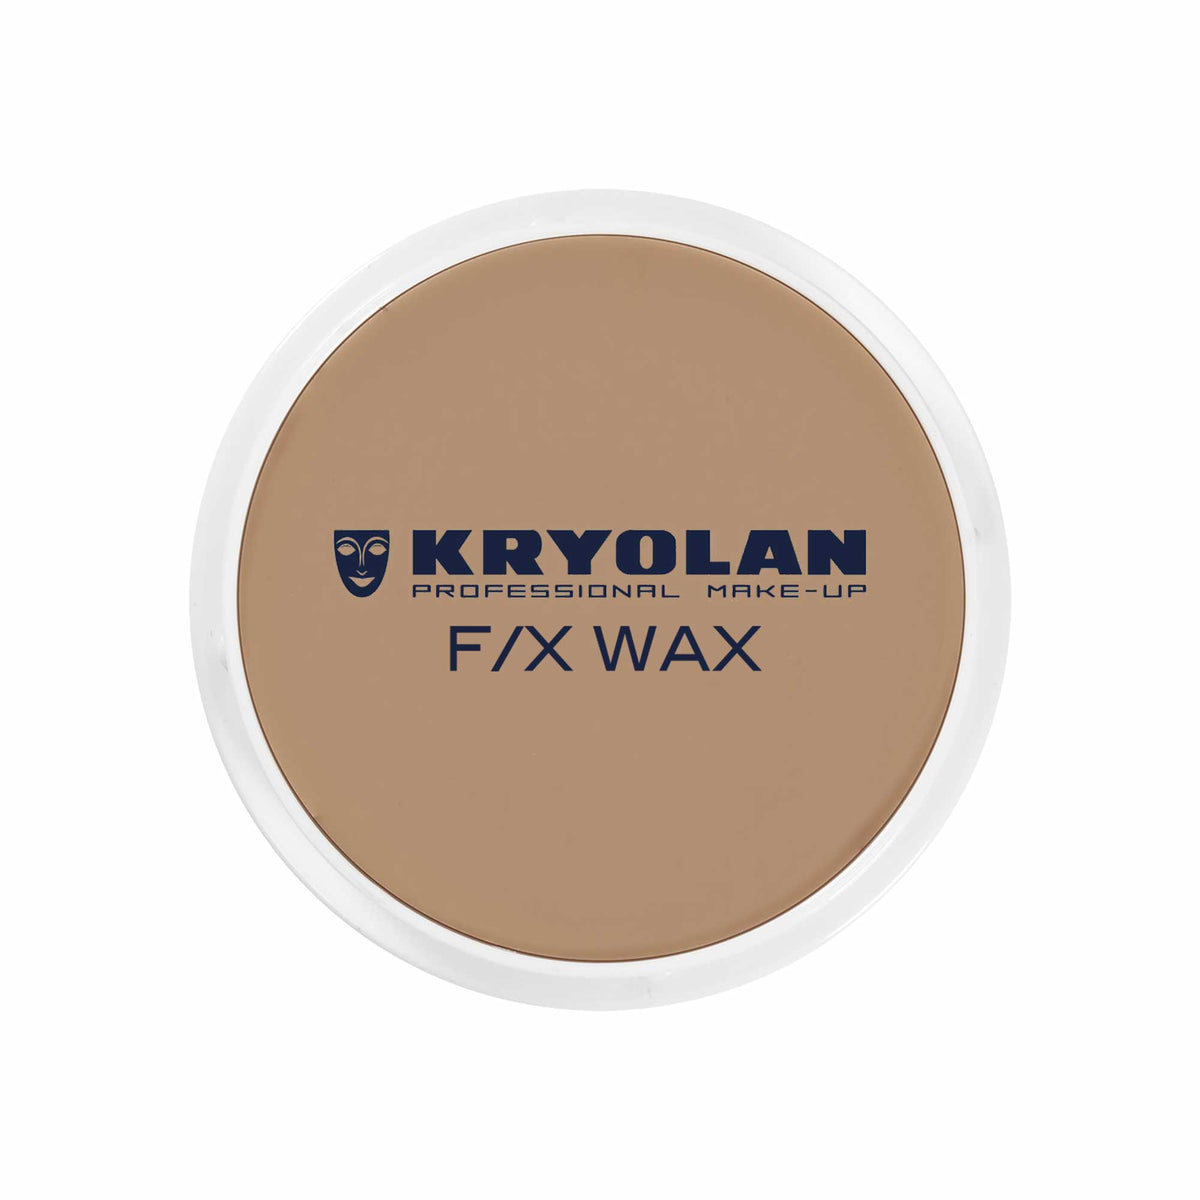 Kryolan F/X Wax - SFX Wax with Silicone